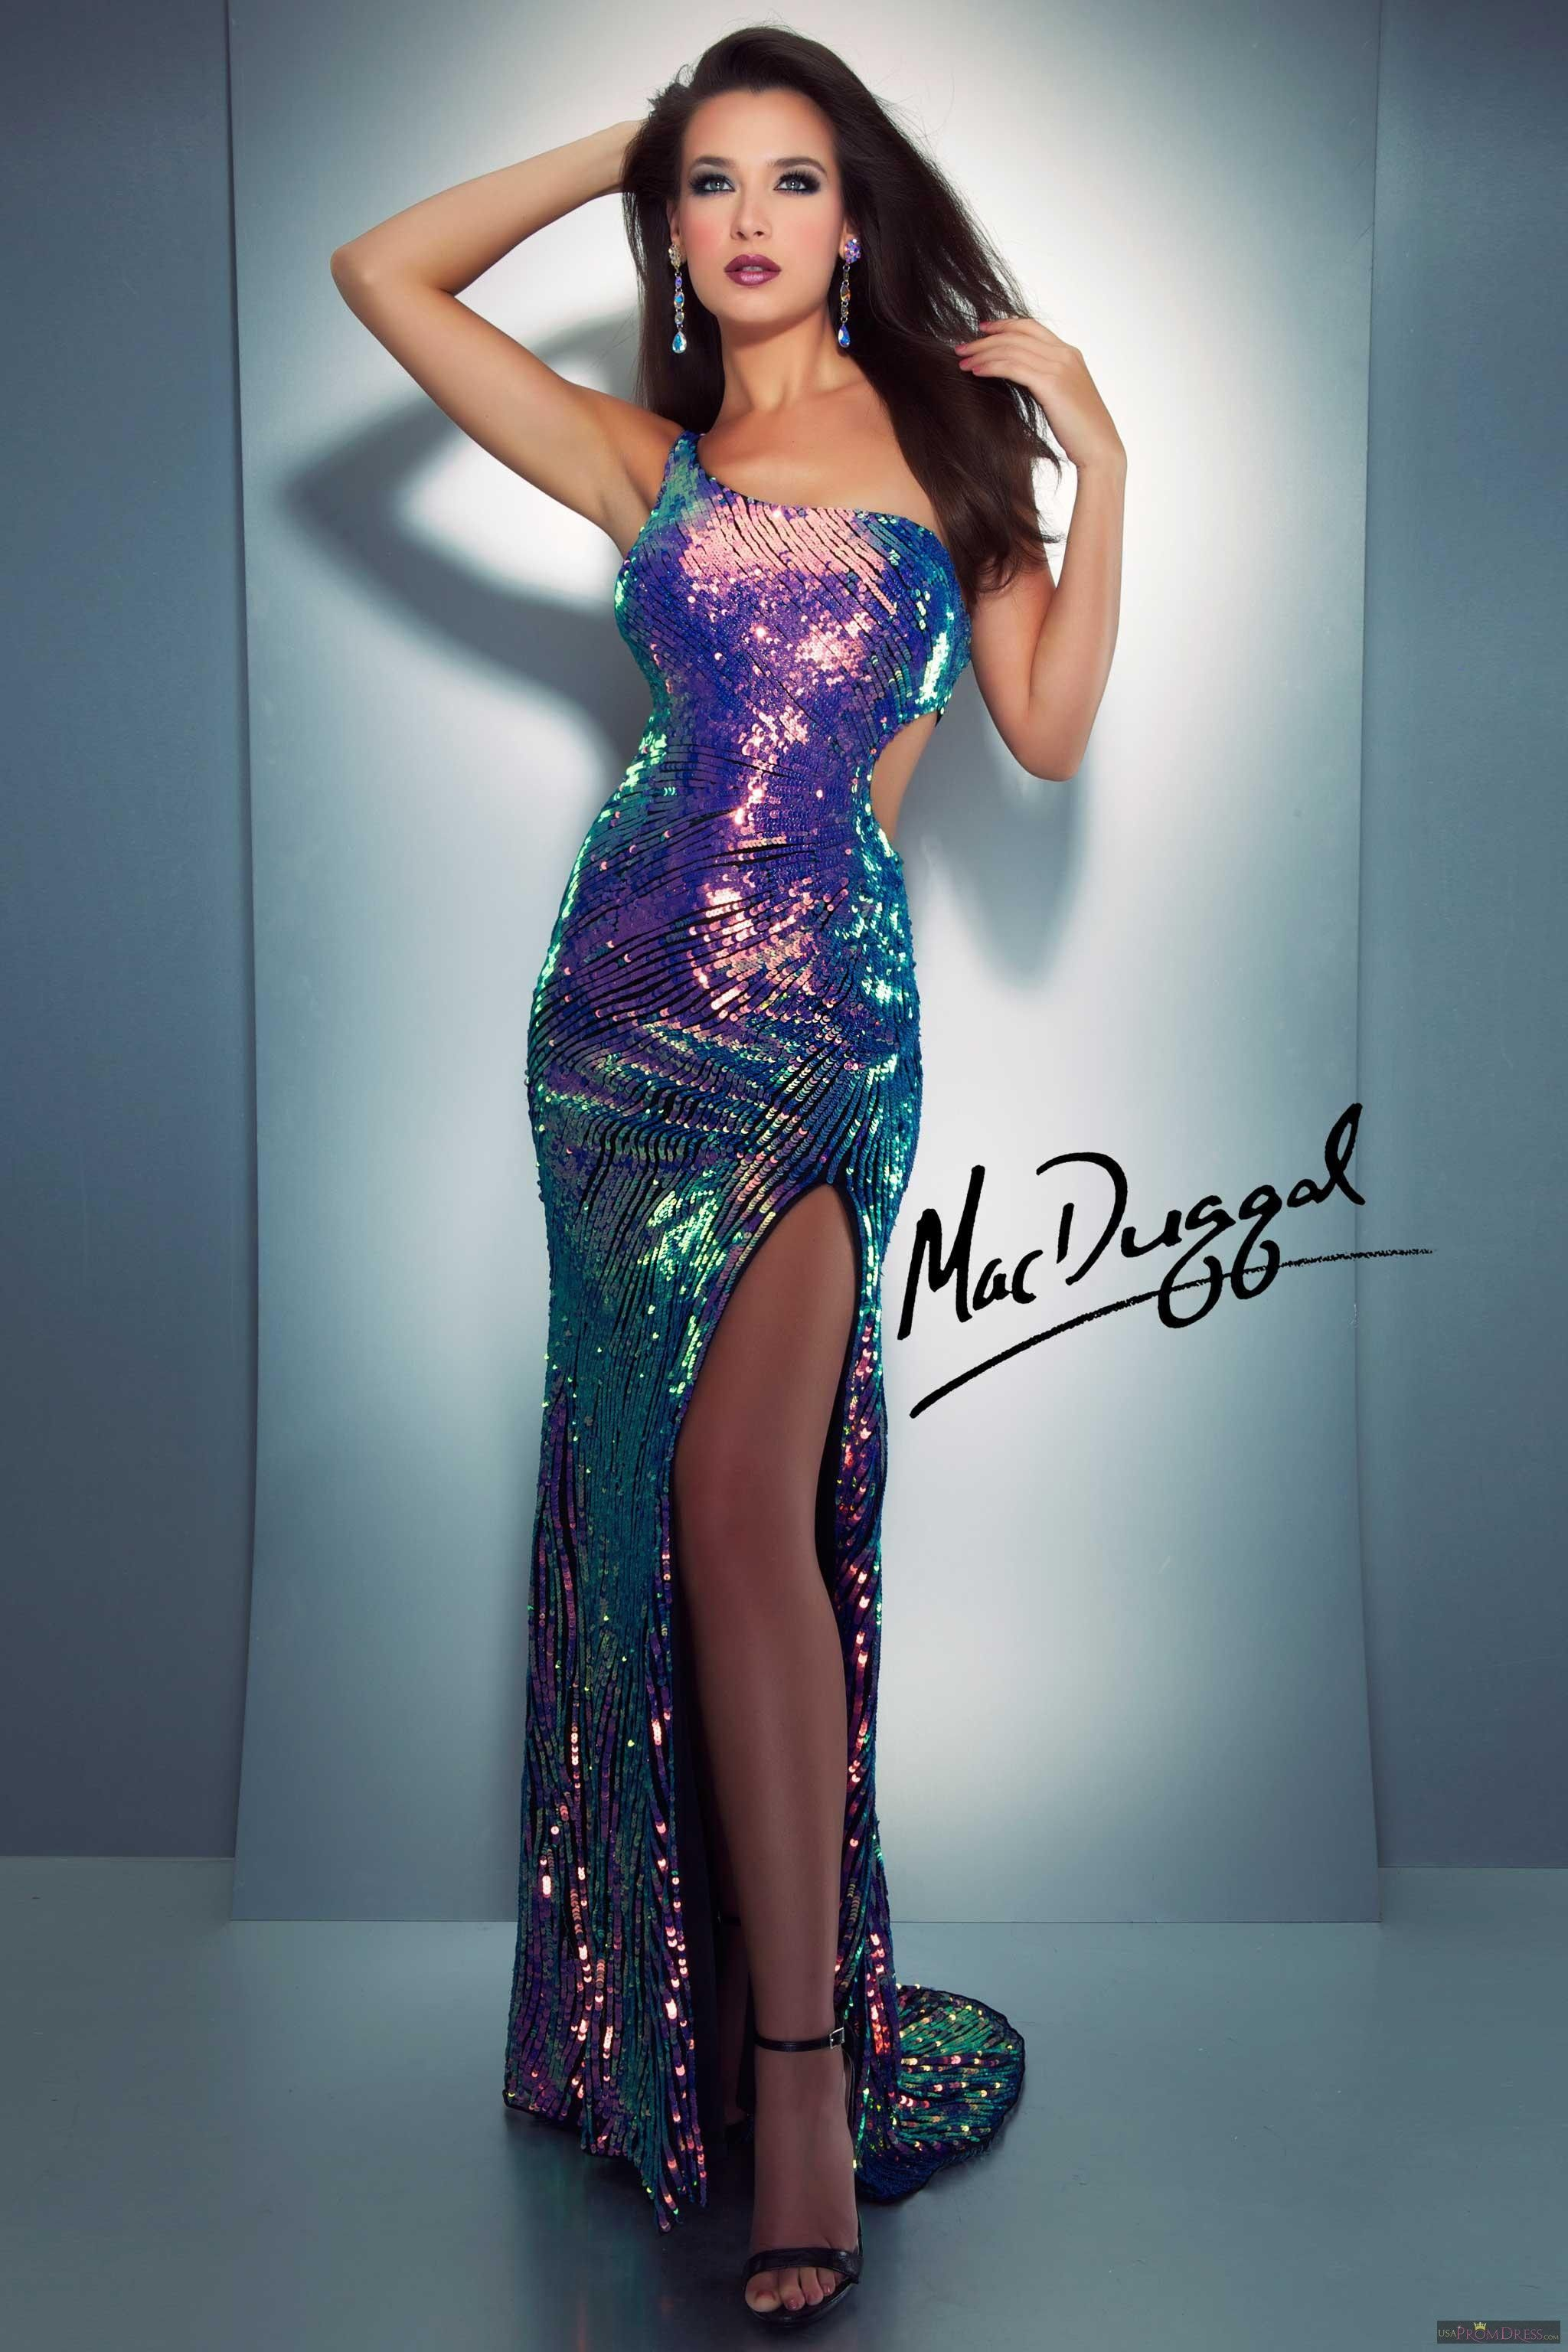 Mac Duggal Style 3702A - Bedazzled one shoulder prom dress will reflect on you in the most sultriest of ways.  Fully sequined prom dress has side cut out and sexy high leg slit.